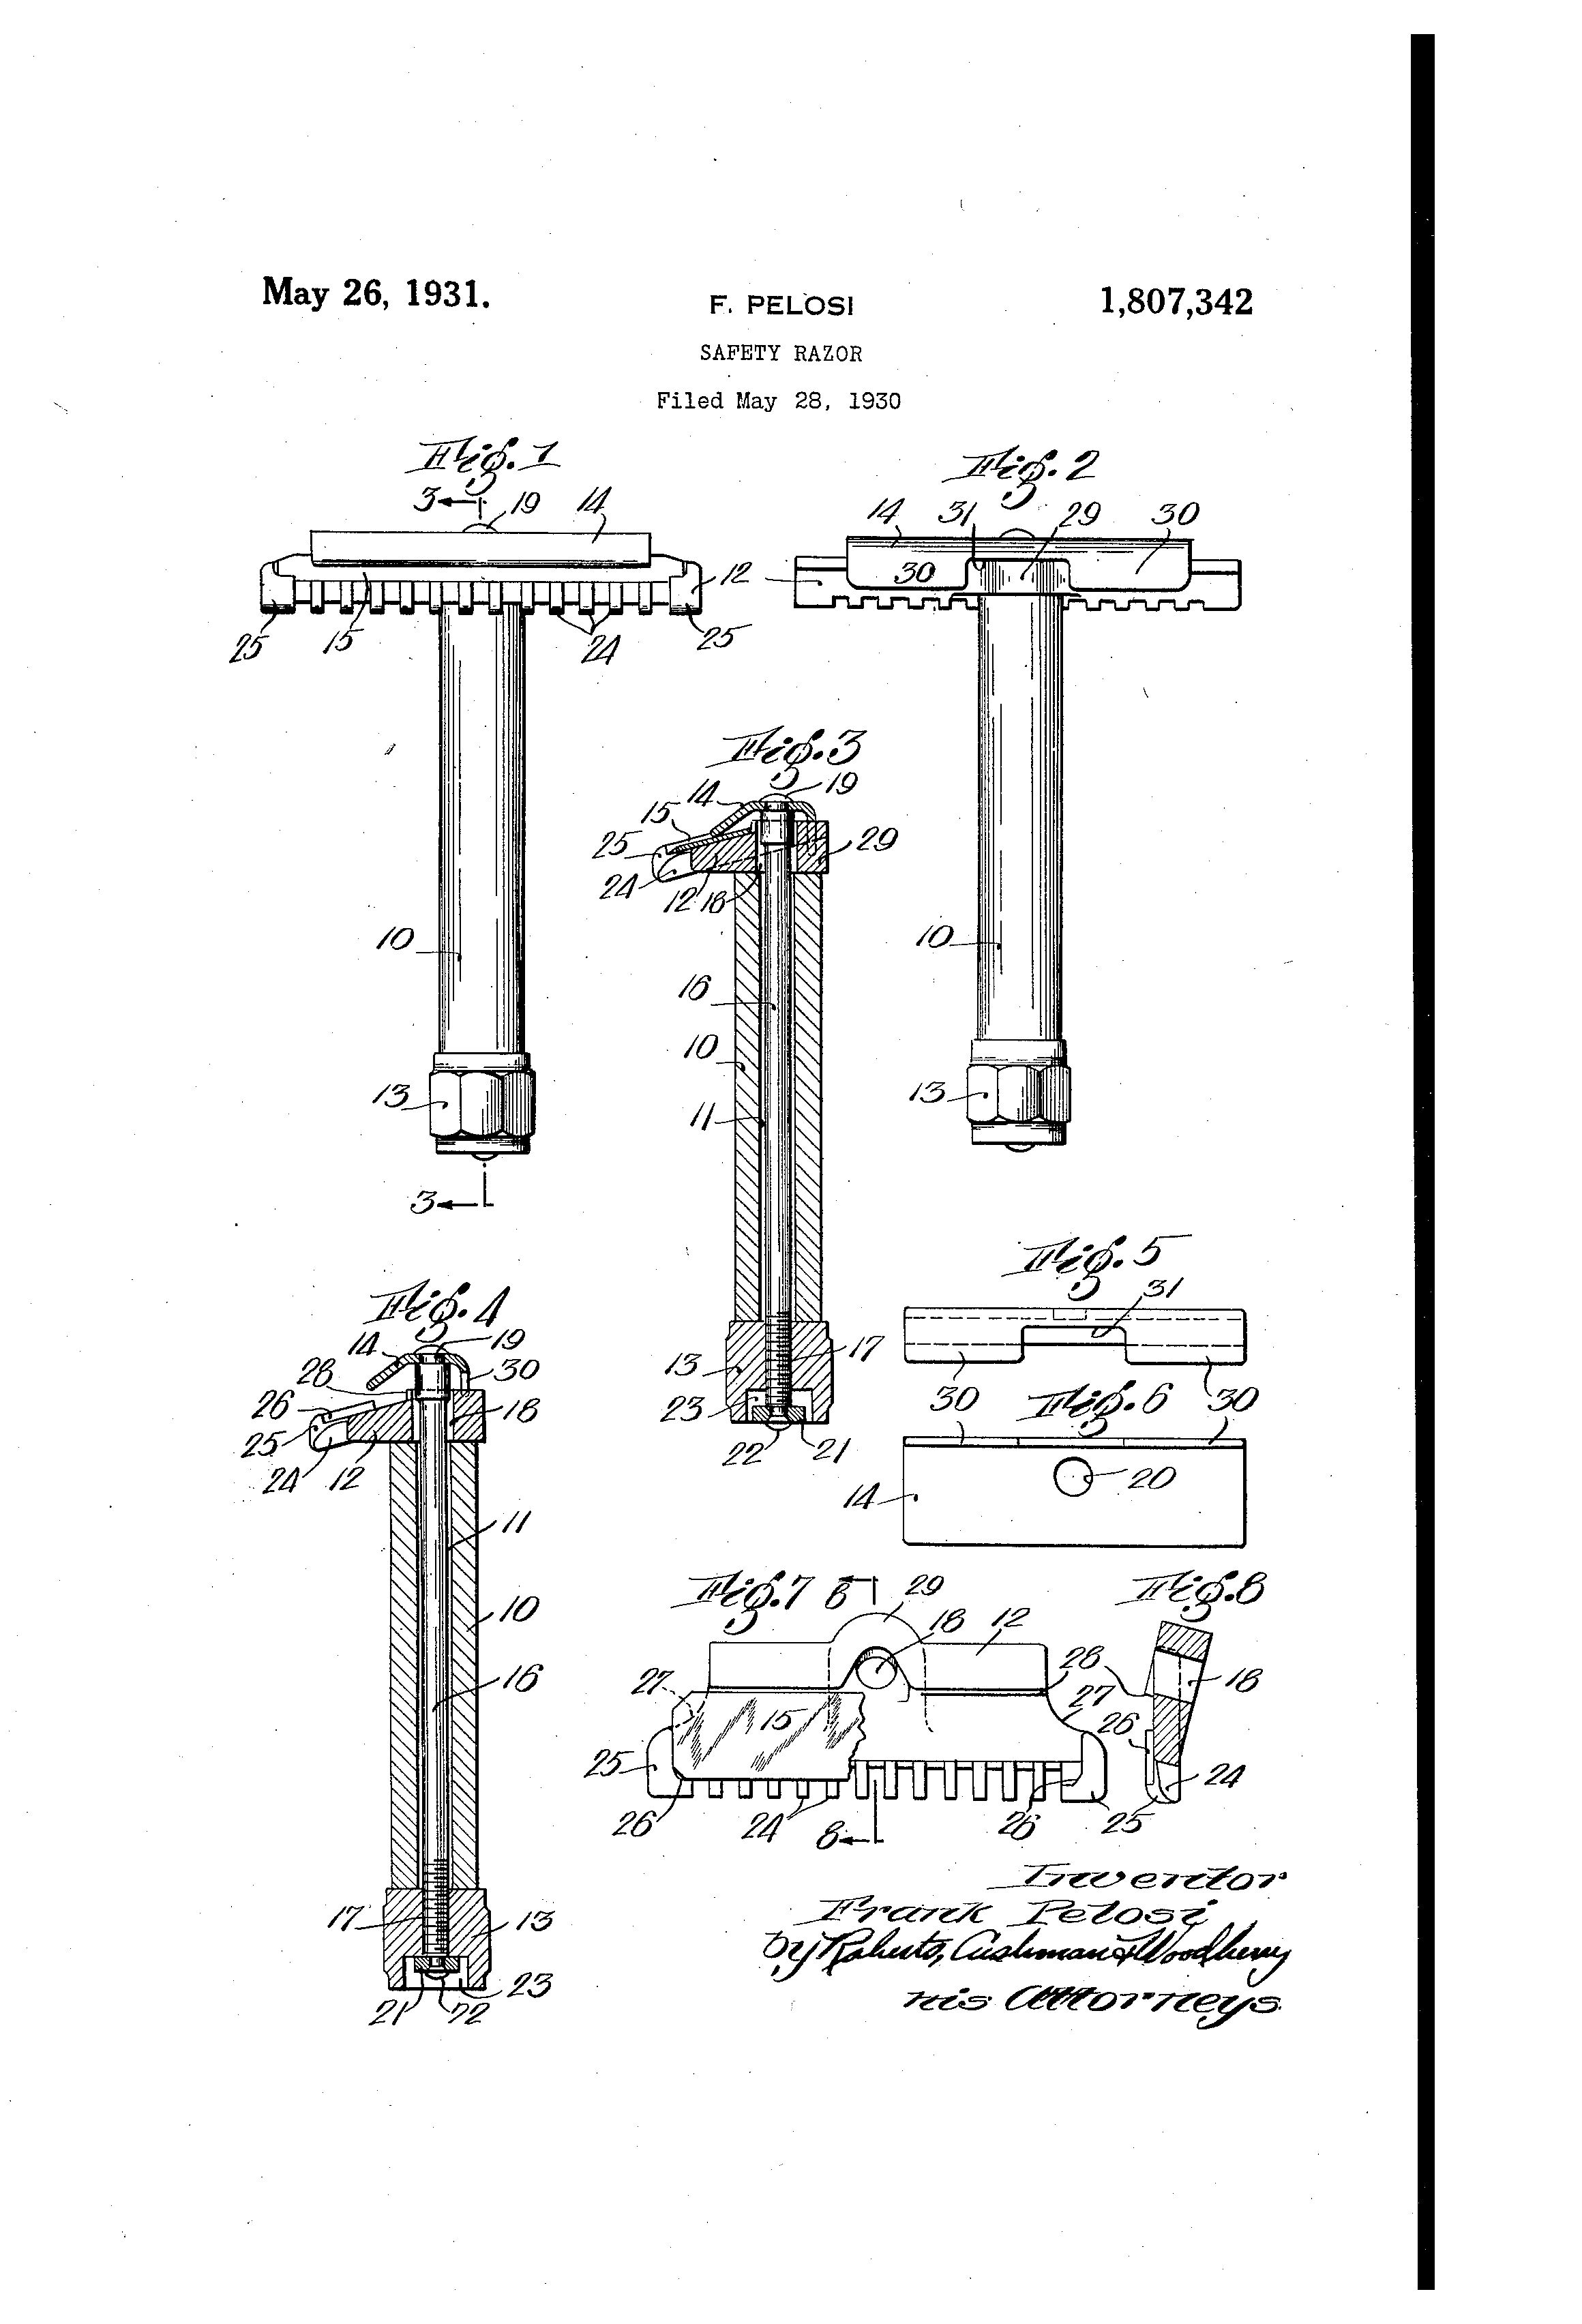 [Image: US1807342-drawings-page-1.png]